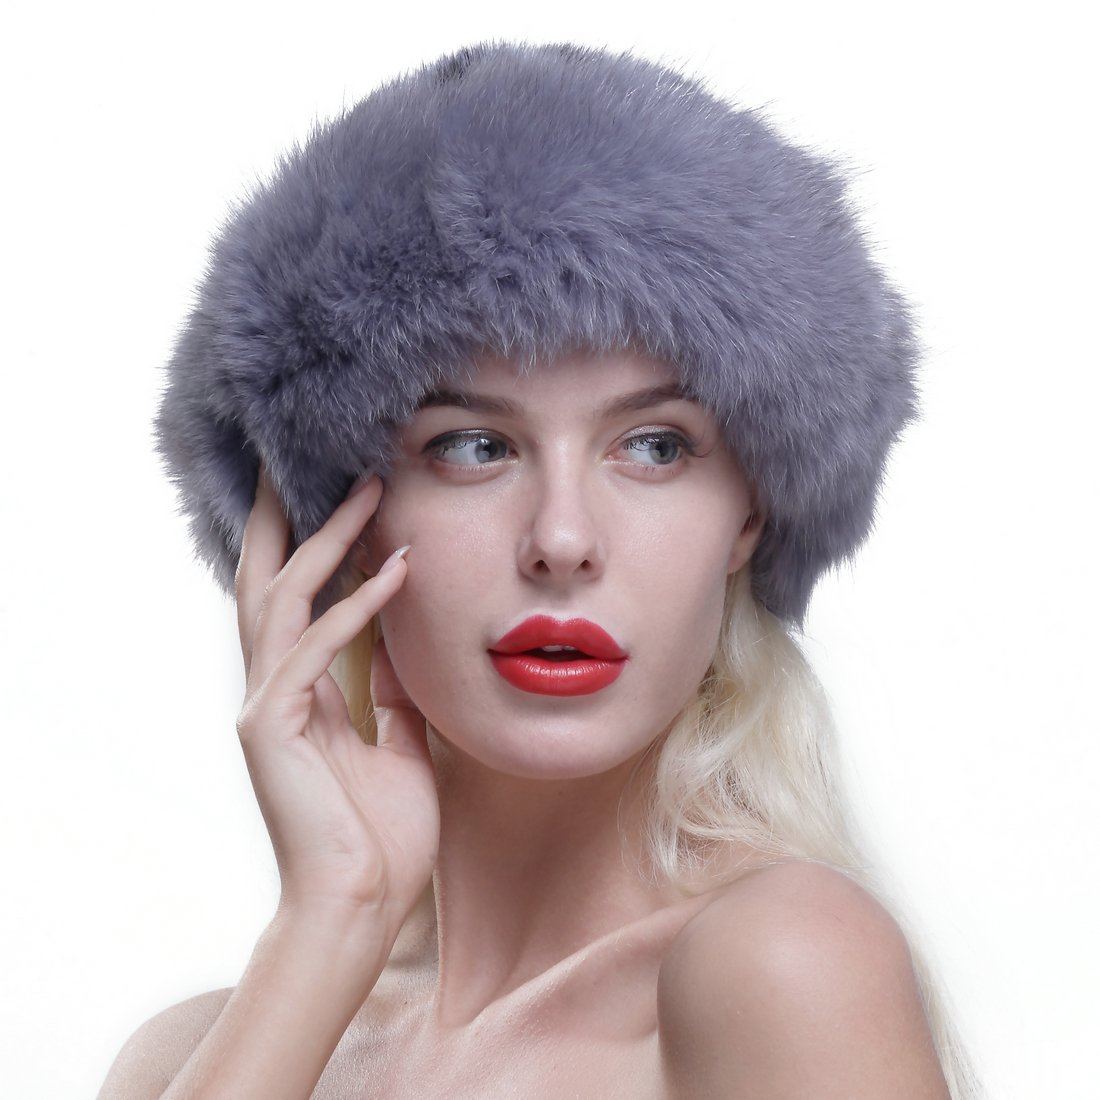 URSFUR Women's Real Fox Fur Roller Hat with Mink Top Multicolor Sapphire